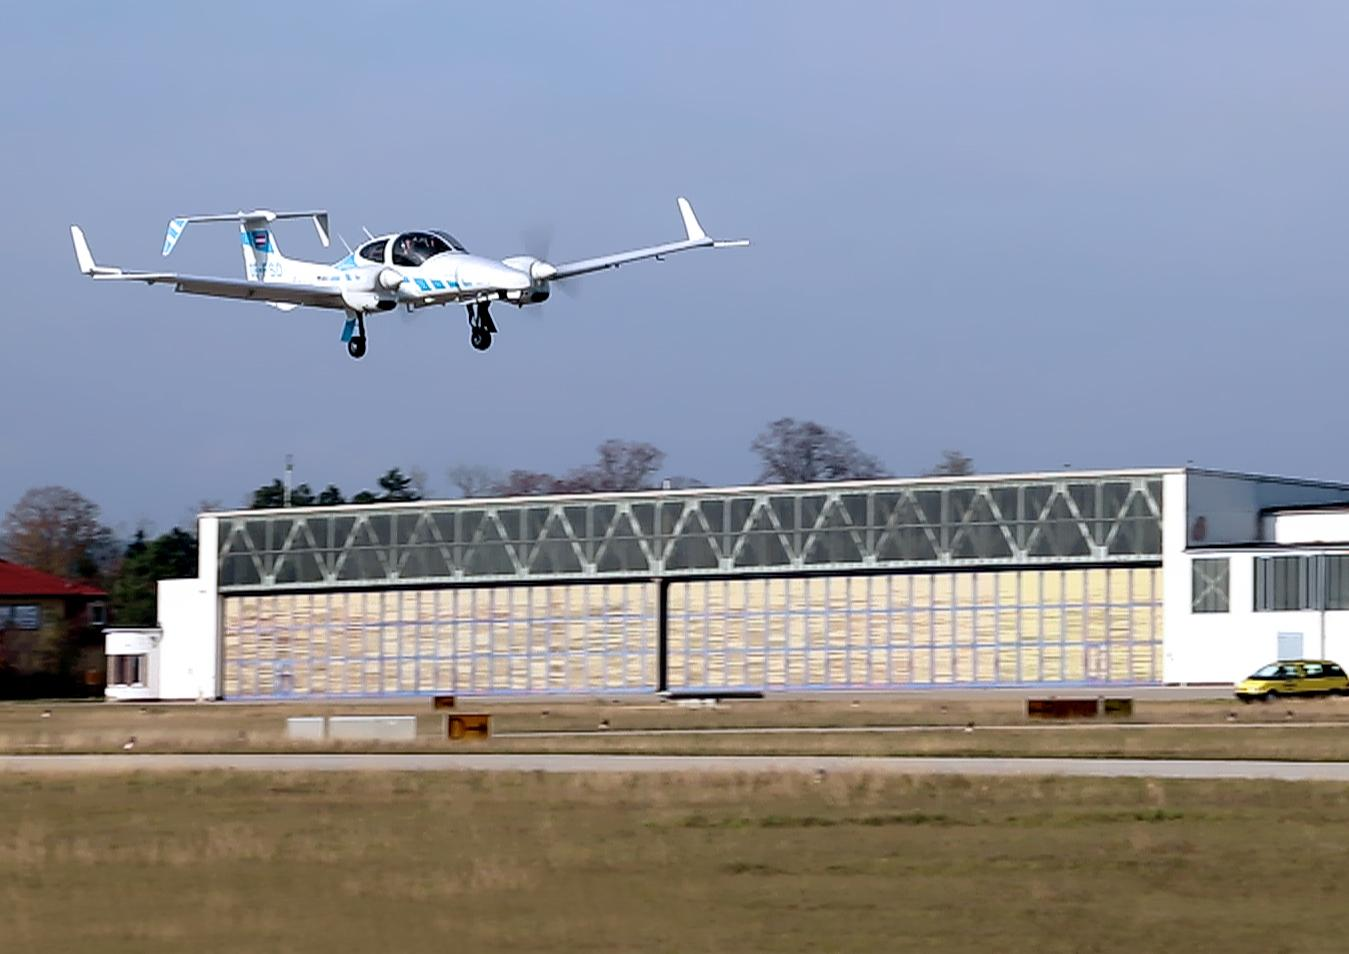 The team's modified Diamond DA42 aircraft uses the system to make an automatic landing